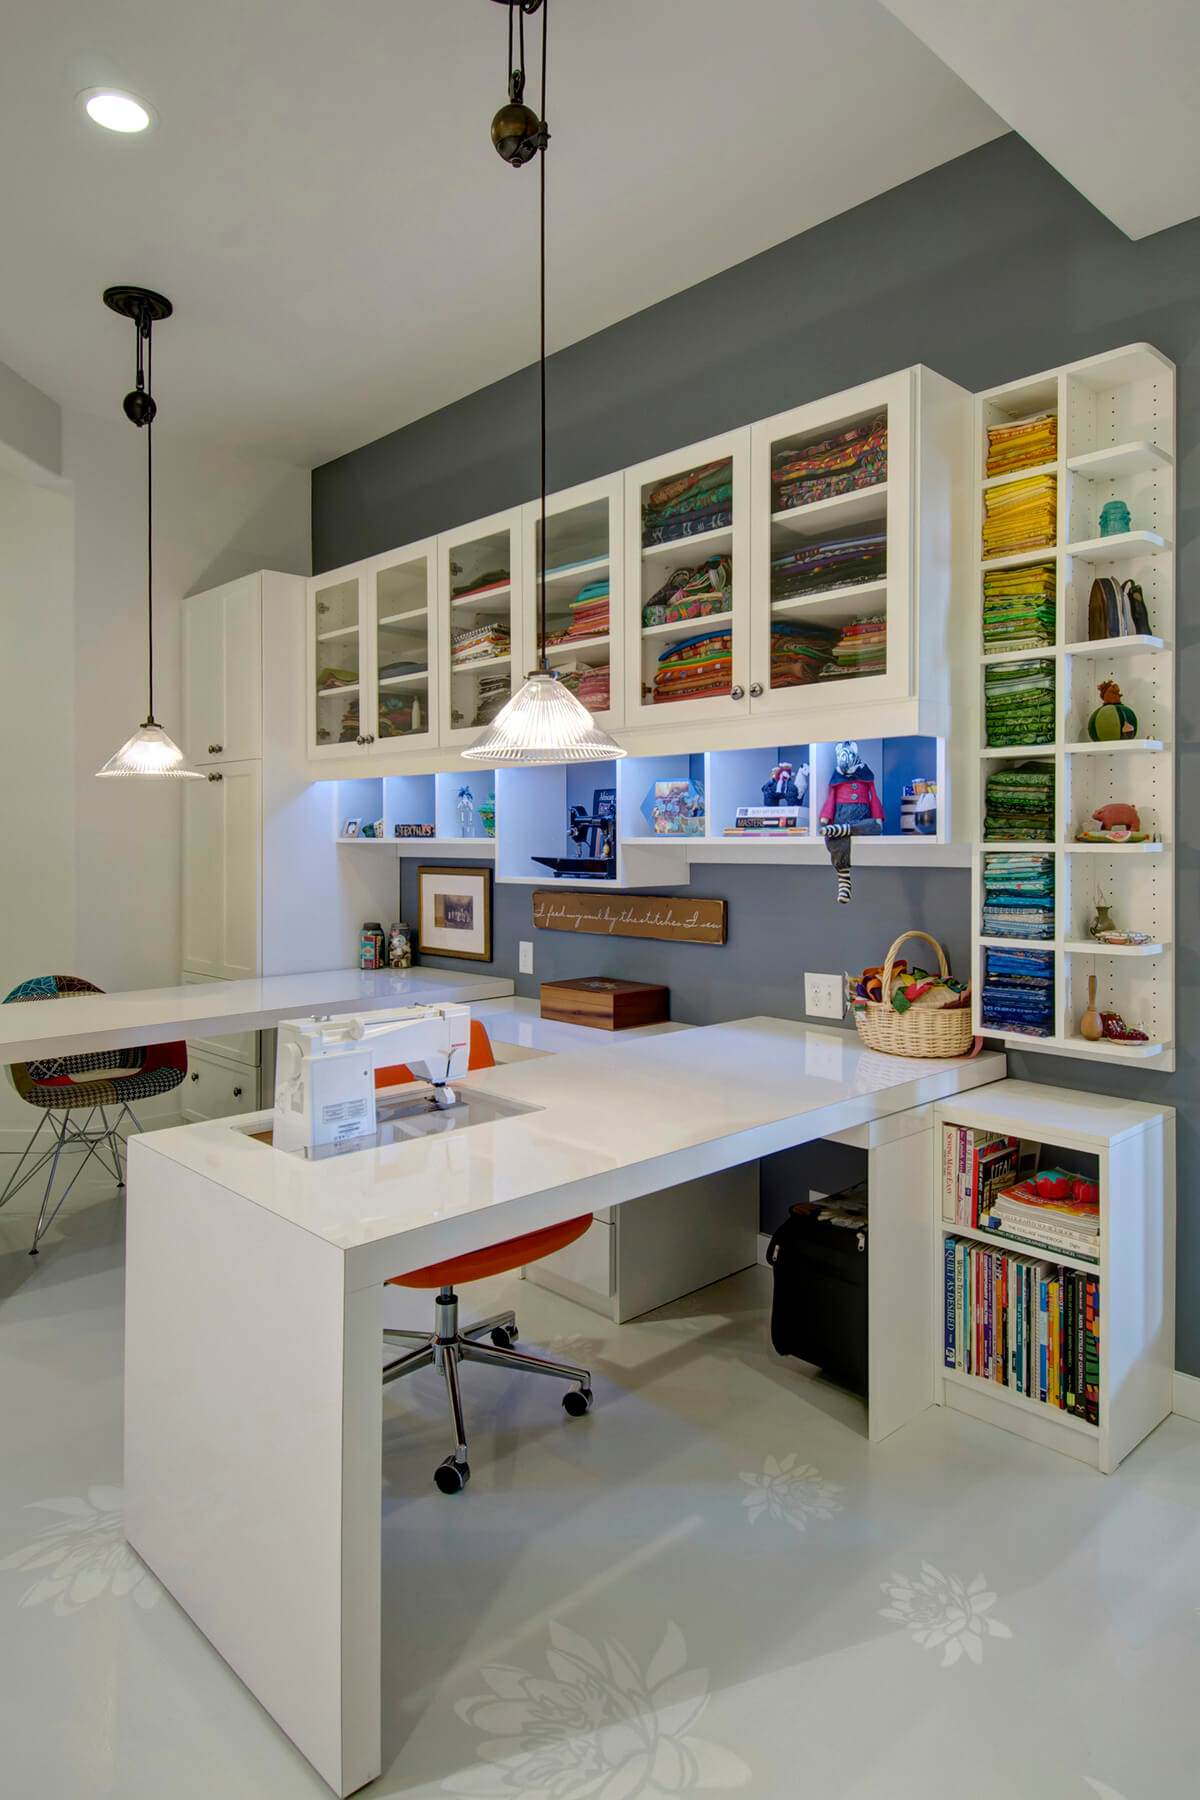 23 craft room design ideas creative rooms for Building a craft room